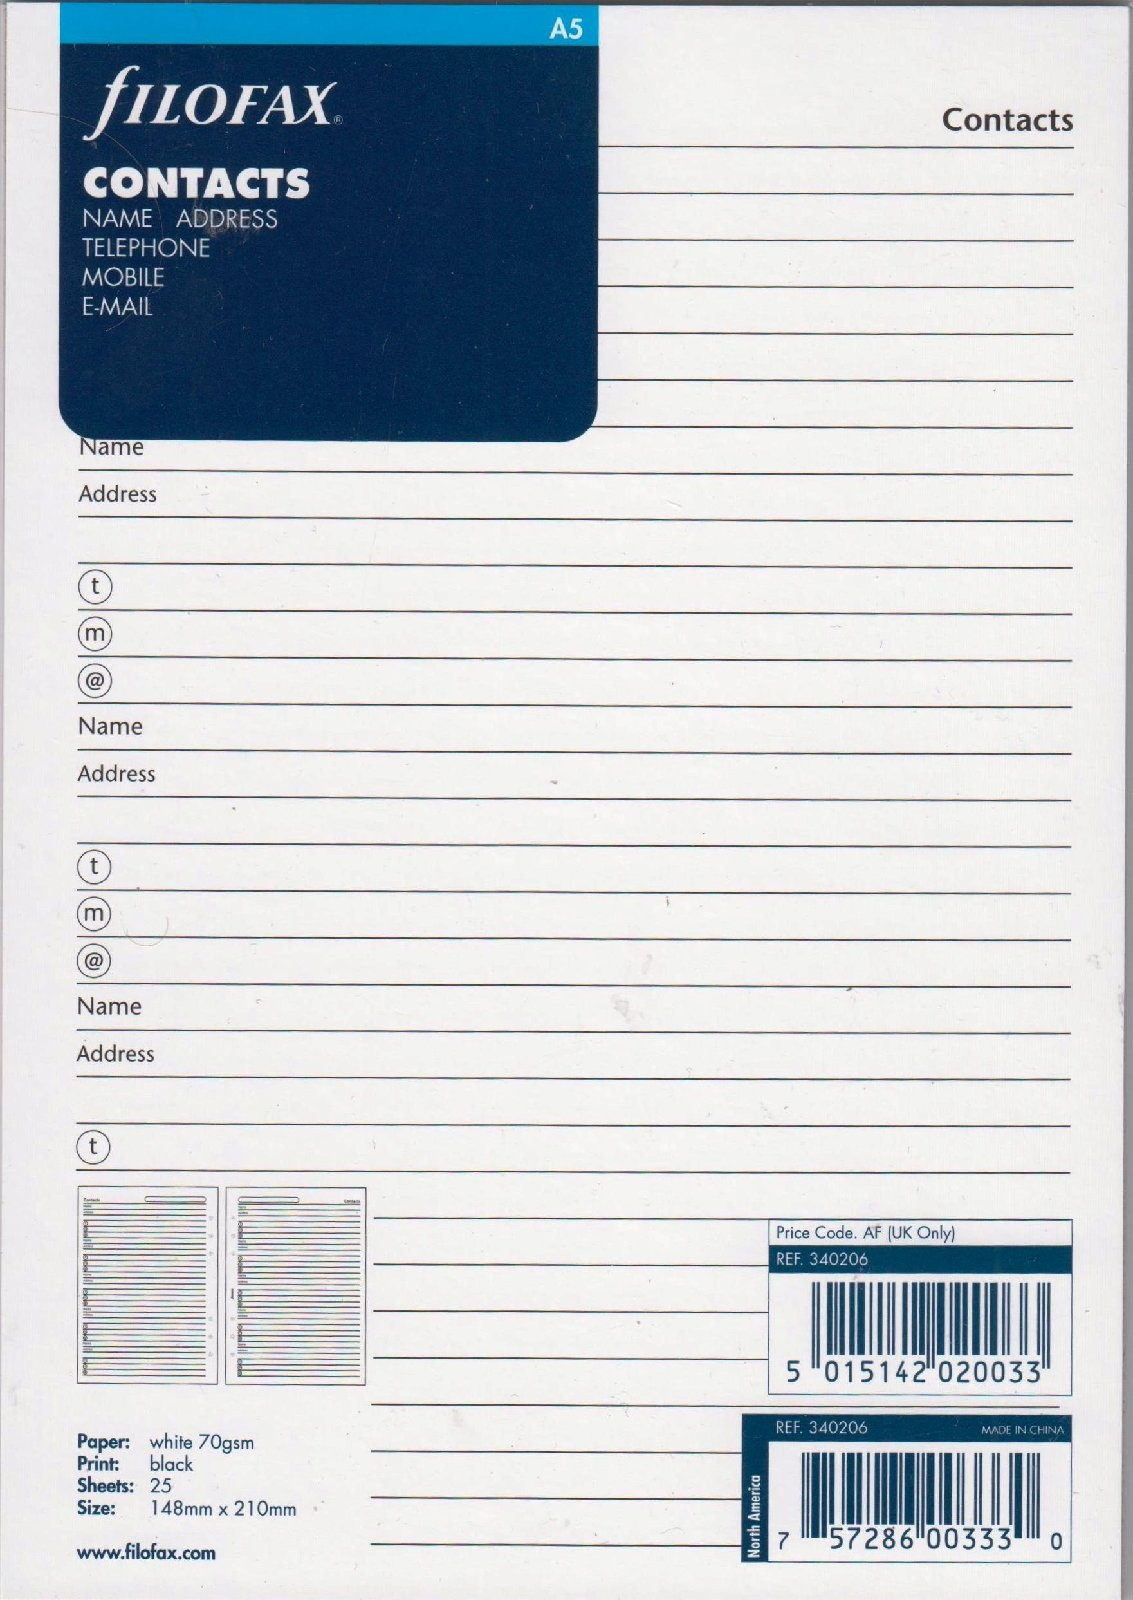 Filofax Deutschland A5 CONTACTS Name,Adress,Teleph Name/Adr/Tel/Mobil/Email